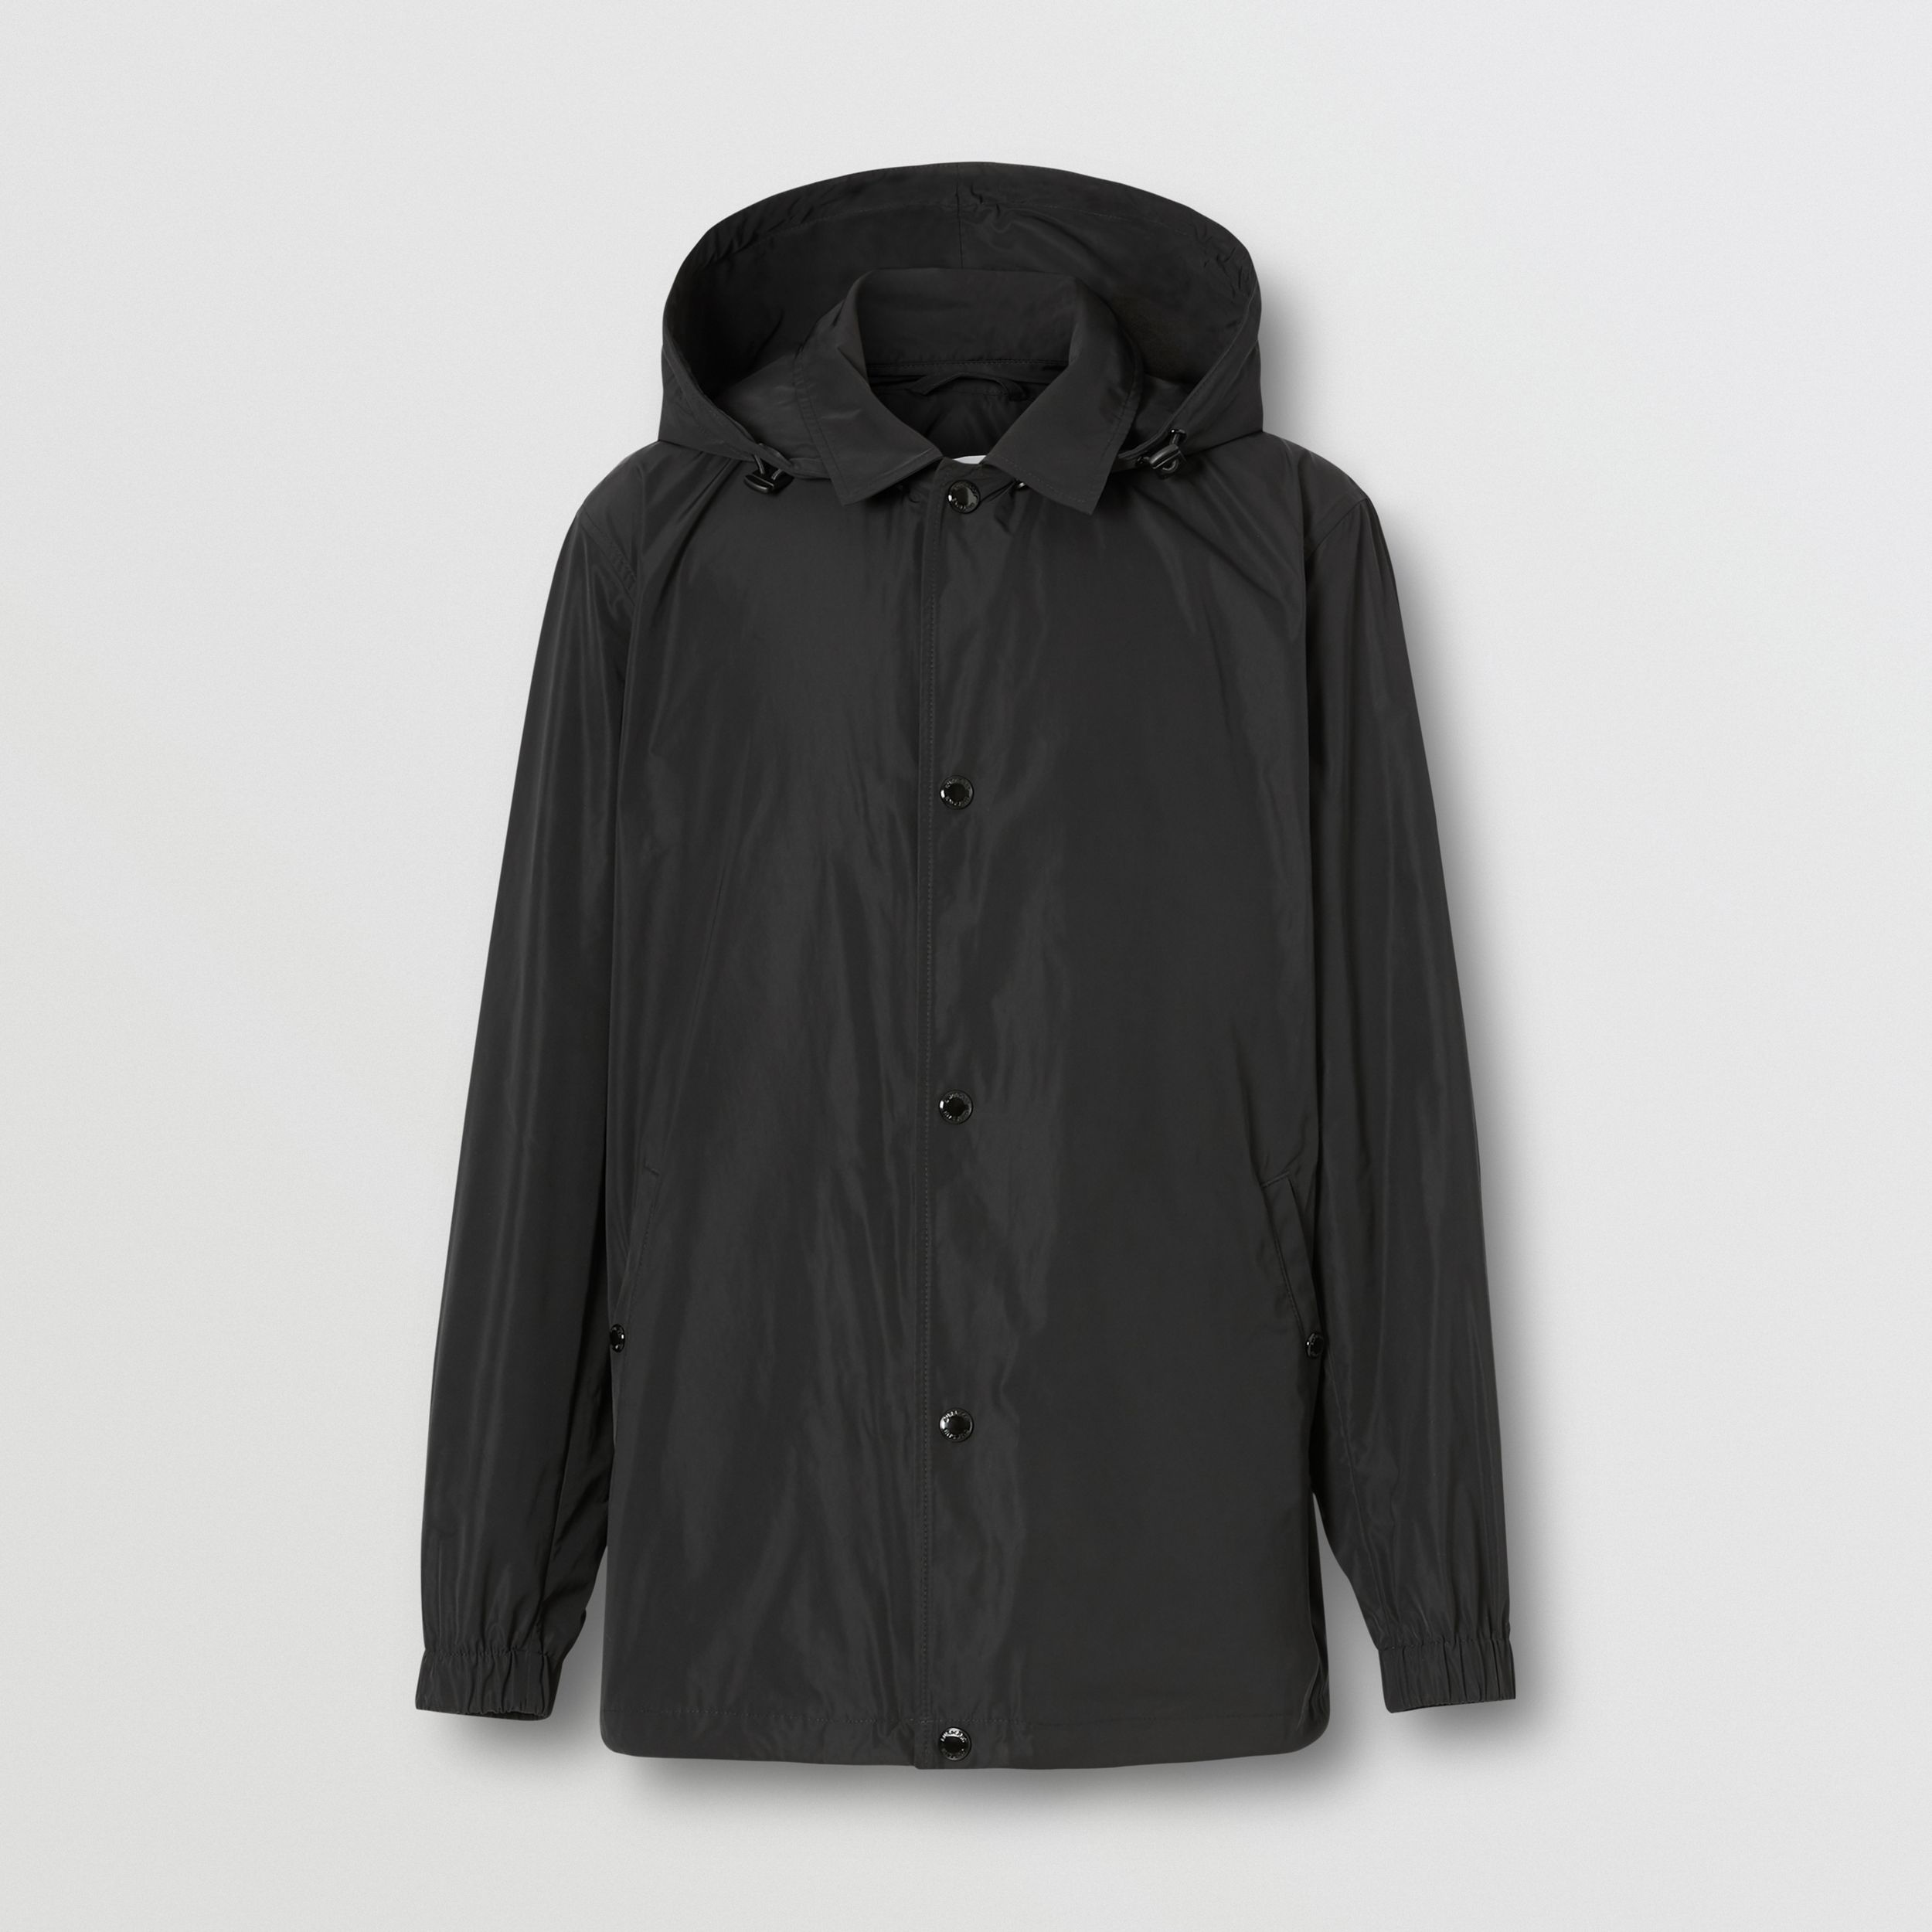 Detachable Hood Logo Graphic Lightweight Jacket in Black - Men | Burberry - 4